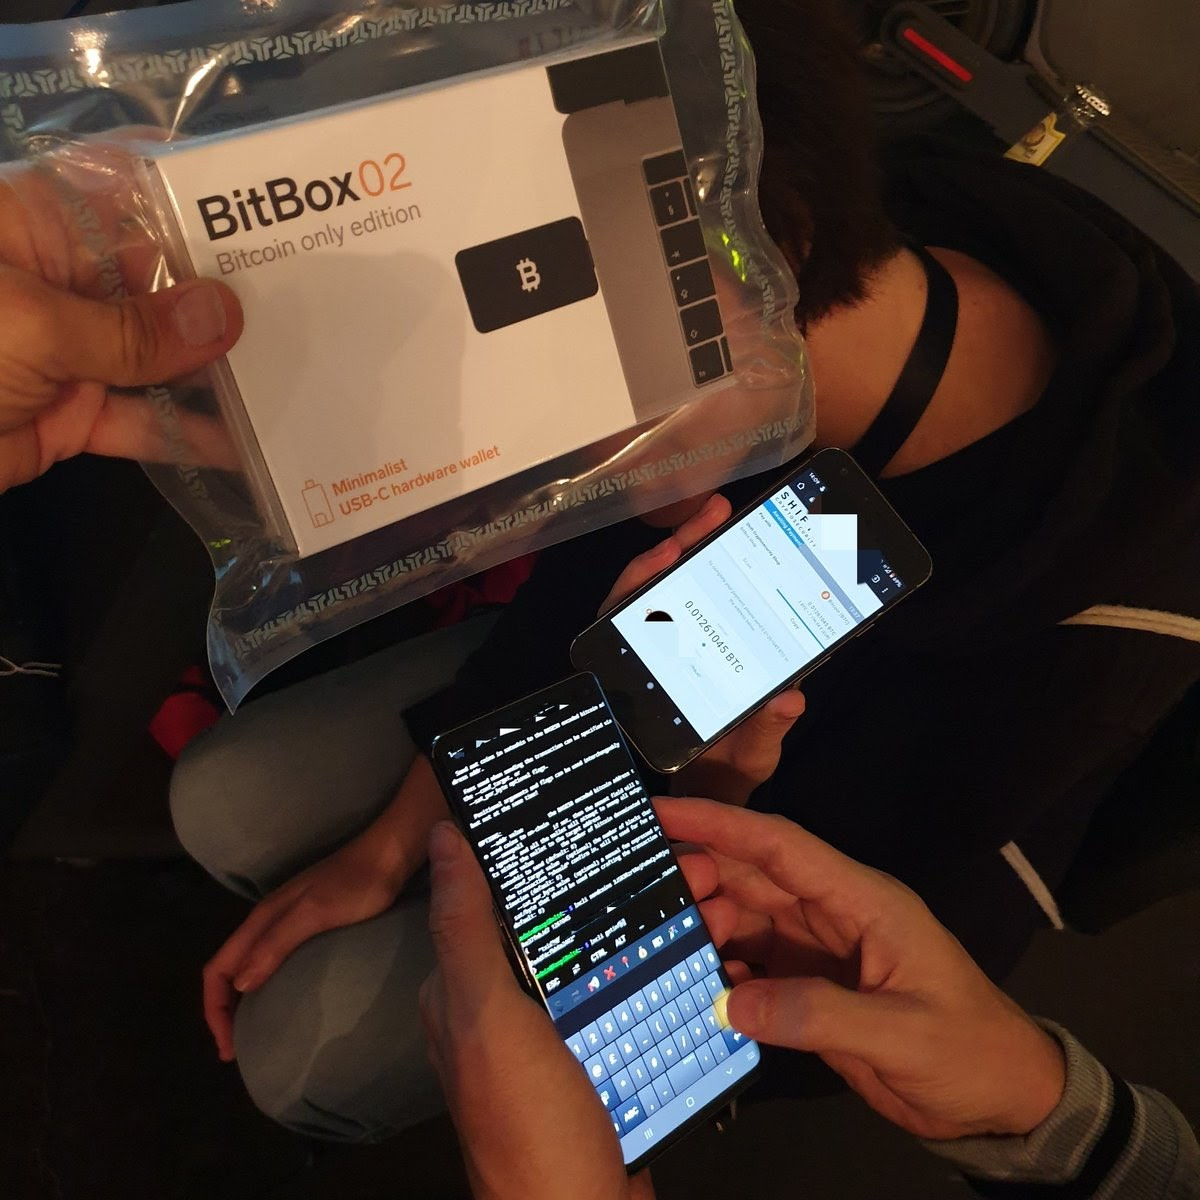 The BitBox02 joins the club of bitcoin-only hardware wallets. Source: Twitter